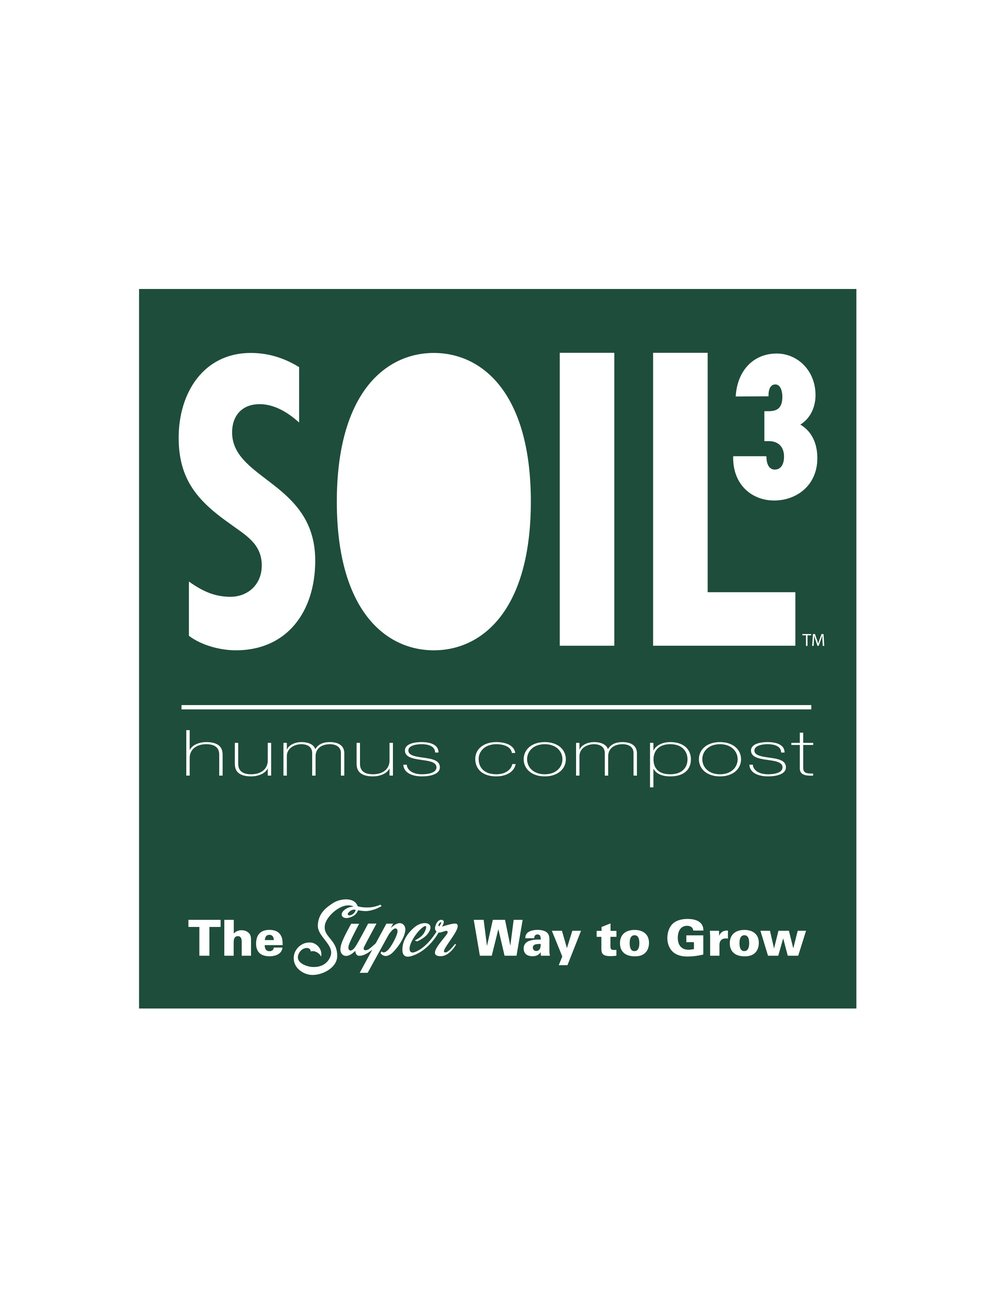 SOIL3 logo (green).jpg